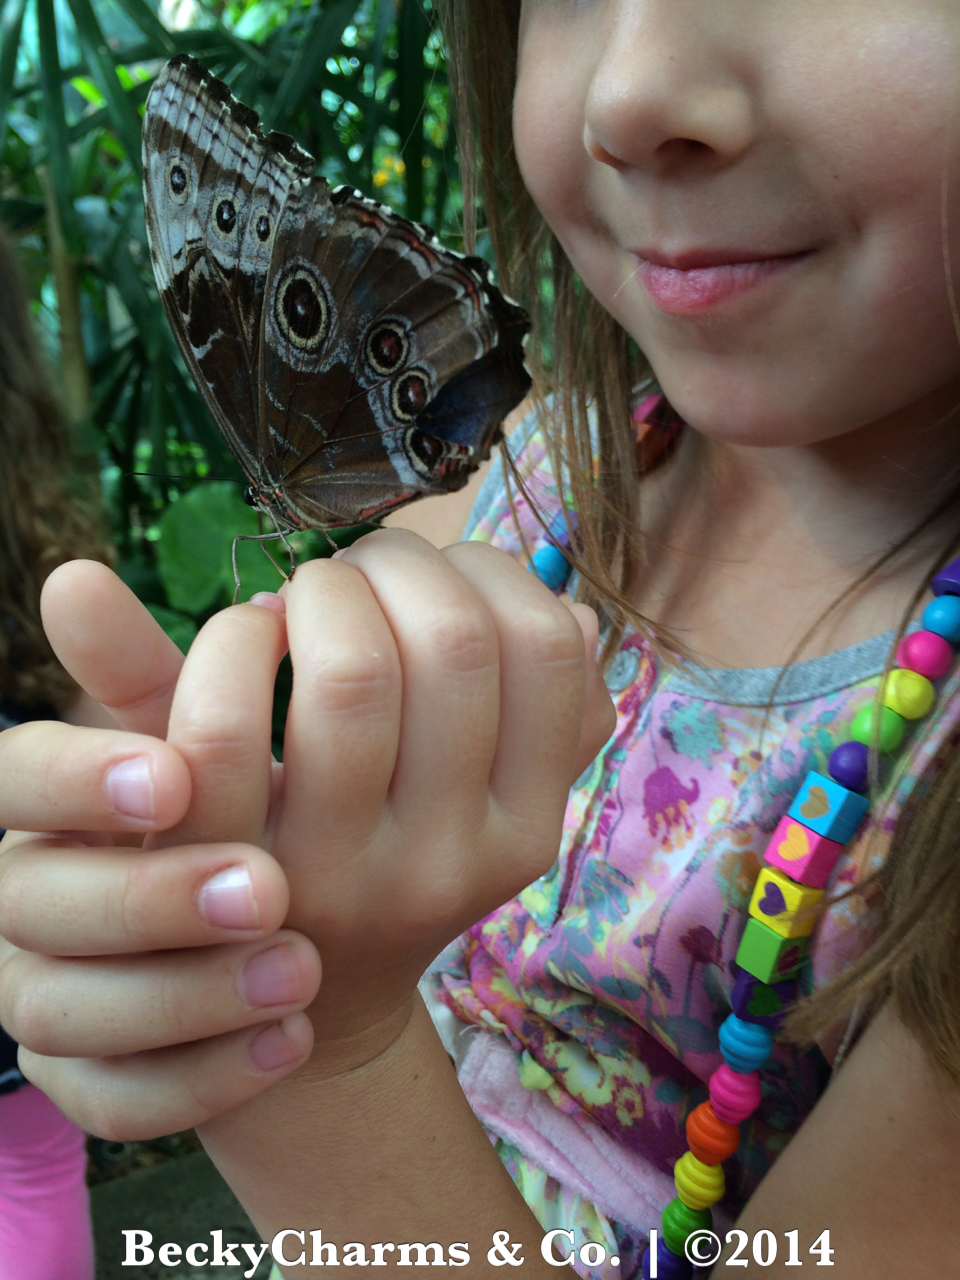 Our Trip to Butterfly Jungle at San Diego Safari Park for Spring Break 2014 by BeckyCharms